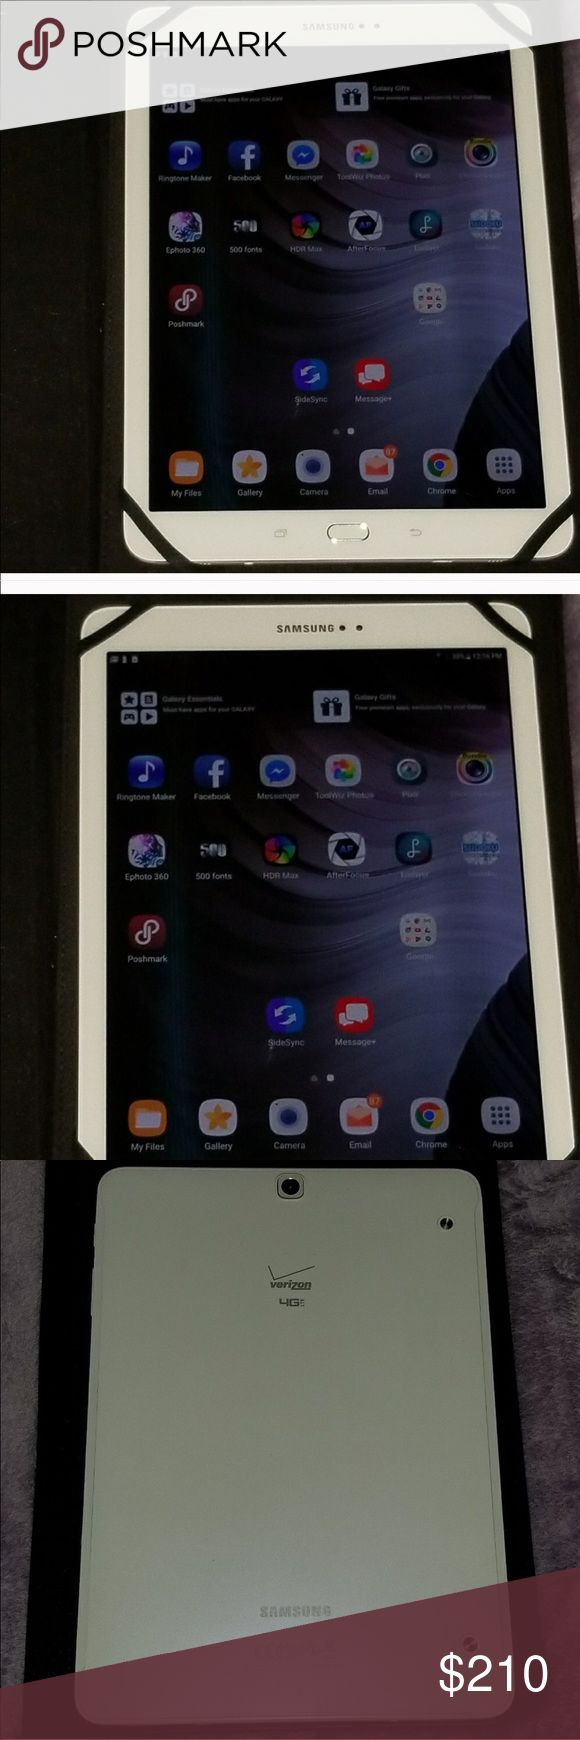 Samsung Galaxy Tab 2 Samsung Galaxy Tab 2 Tablet like new, no scratches, no cracks, comes with a case! Samsung Galaxy Tab 2 Accessories Tablet Cases